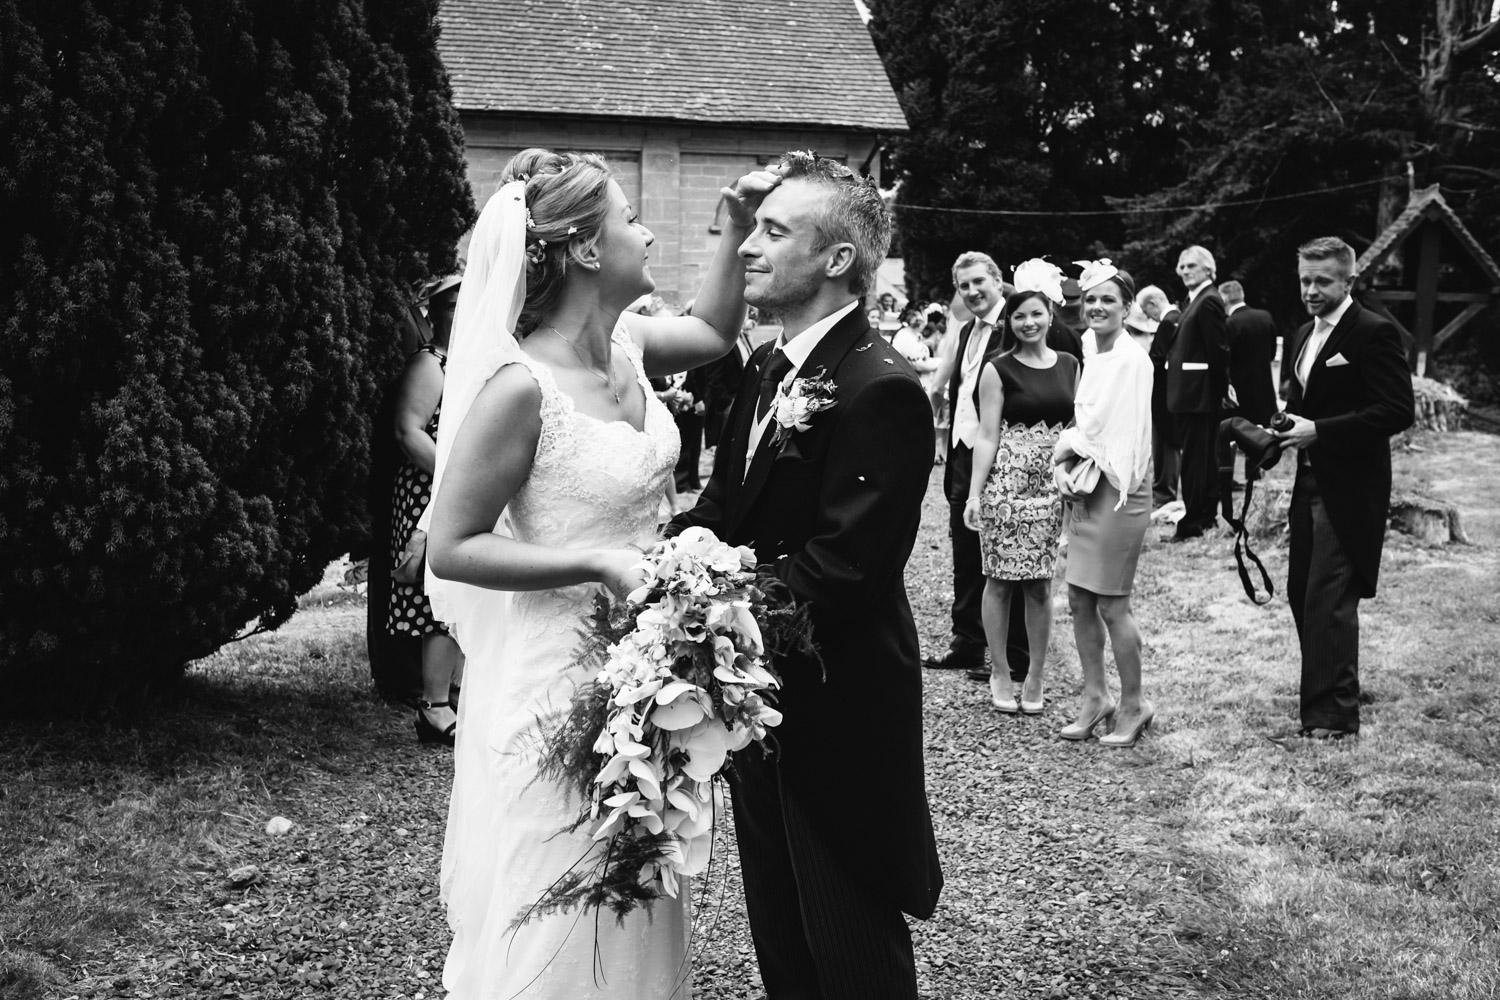 Copy of Bride and Groom with Confetti John Colson Wedding Photographer